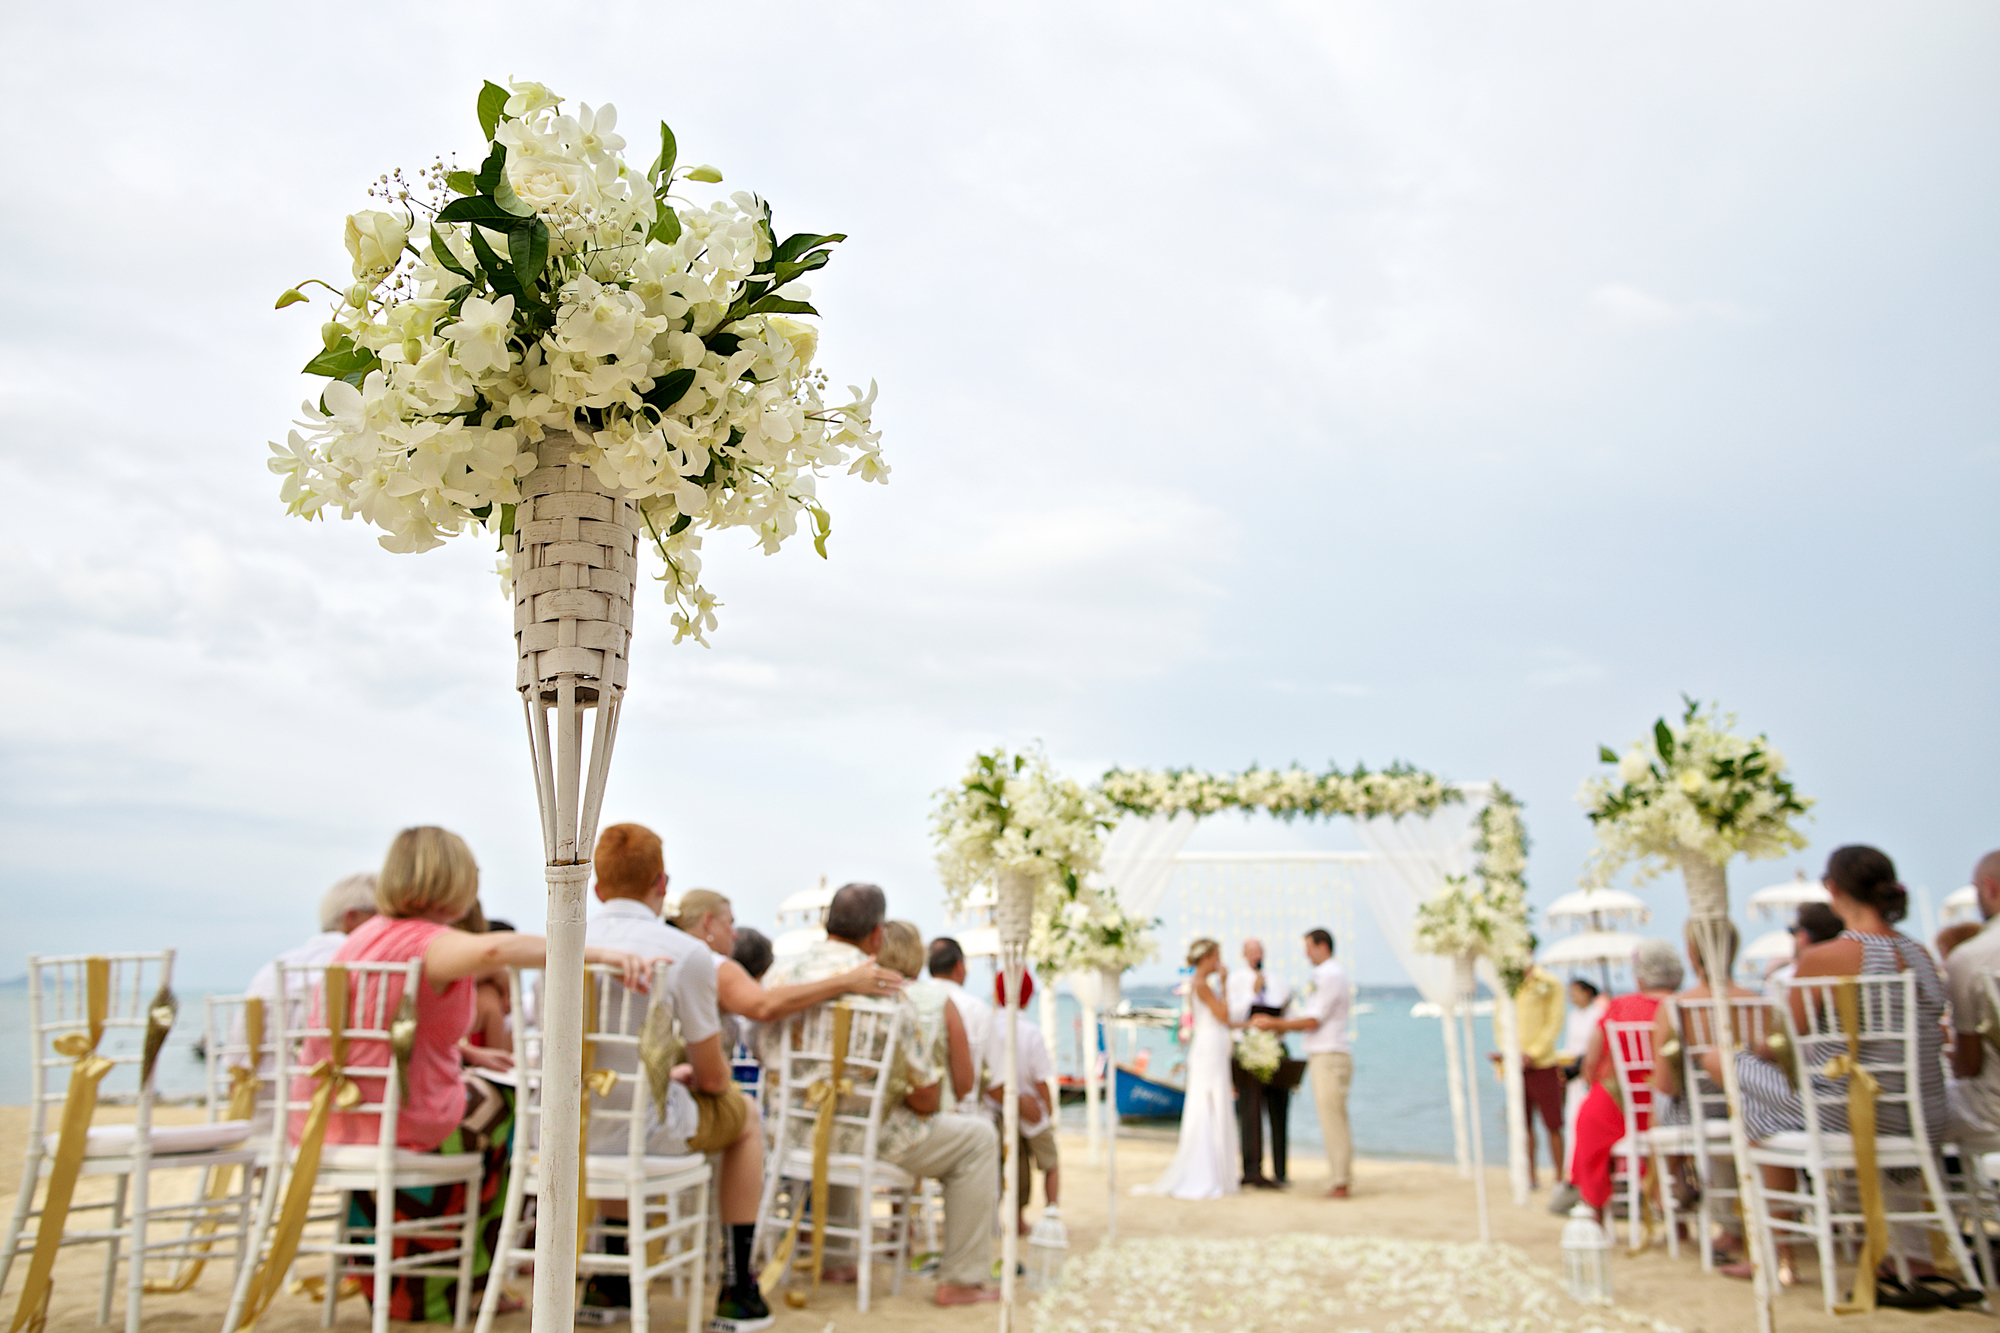 DESTINATION WEDDING - Make your dreams come true with friends and family surrounding you in a tropical paradise.